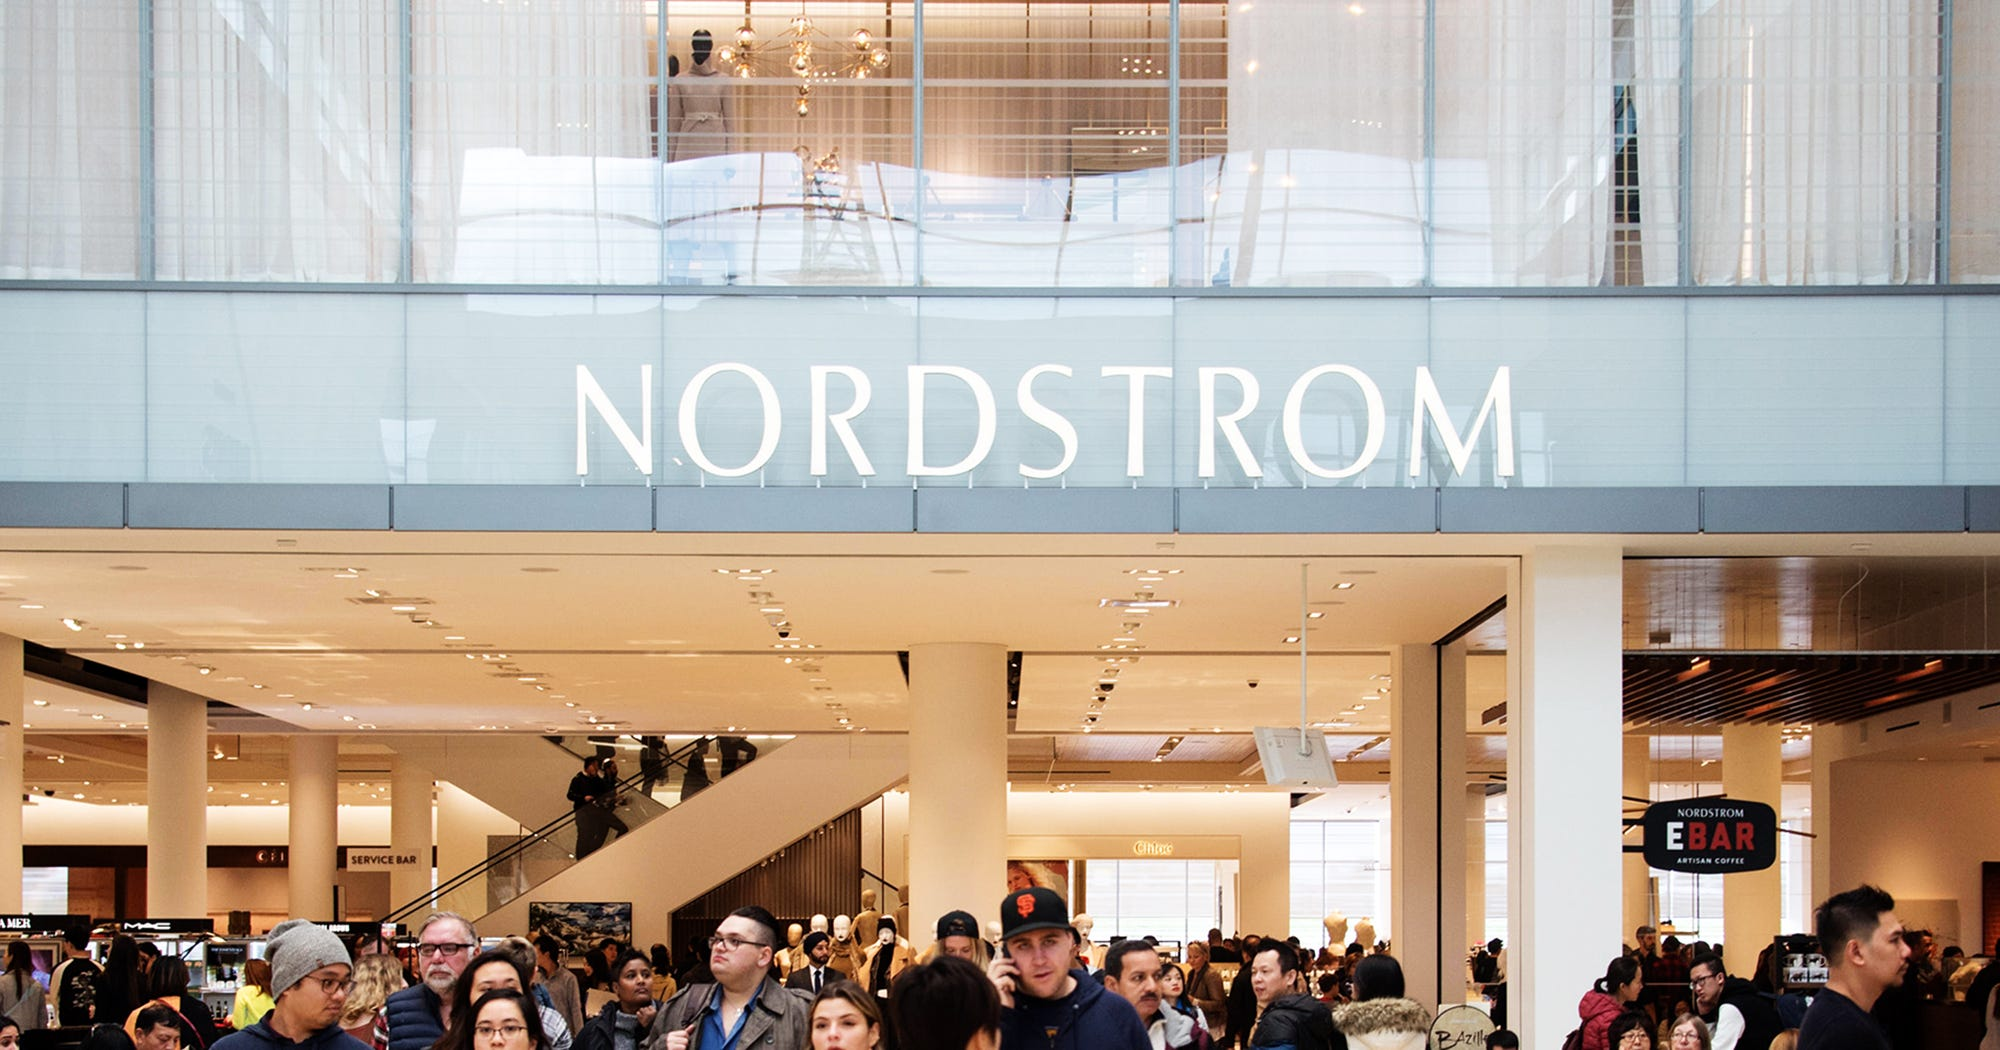 Nordstrom President Trump Immigration Ban Letter. Rent A Laptop Los Angeles Carol Stream Il Map. San Jose Police Blotter Domain Names For Sale. Radiation Oncology Department. Medical Administration Classes. Royal Professional Builders 2010 Jaguar Fx. Phd Programs In New Orleans Souped Up Trucks. Tullahoma Air Force Base Photo Books For Ipad. African American Nursing Scholarships